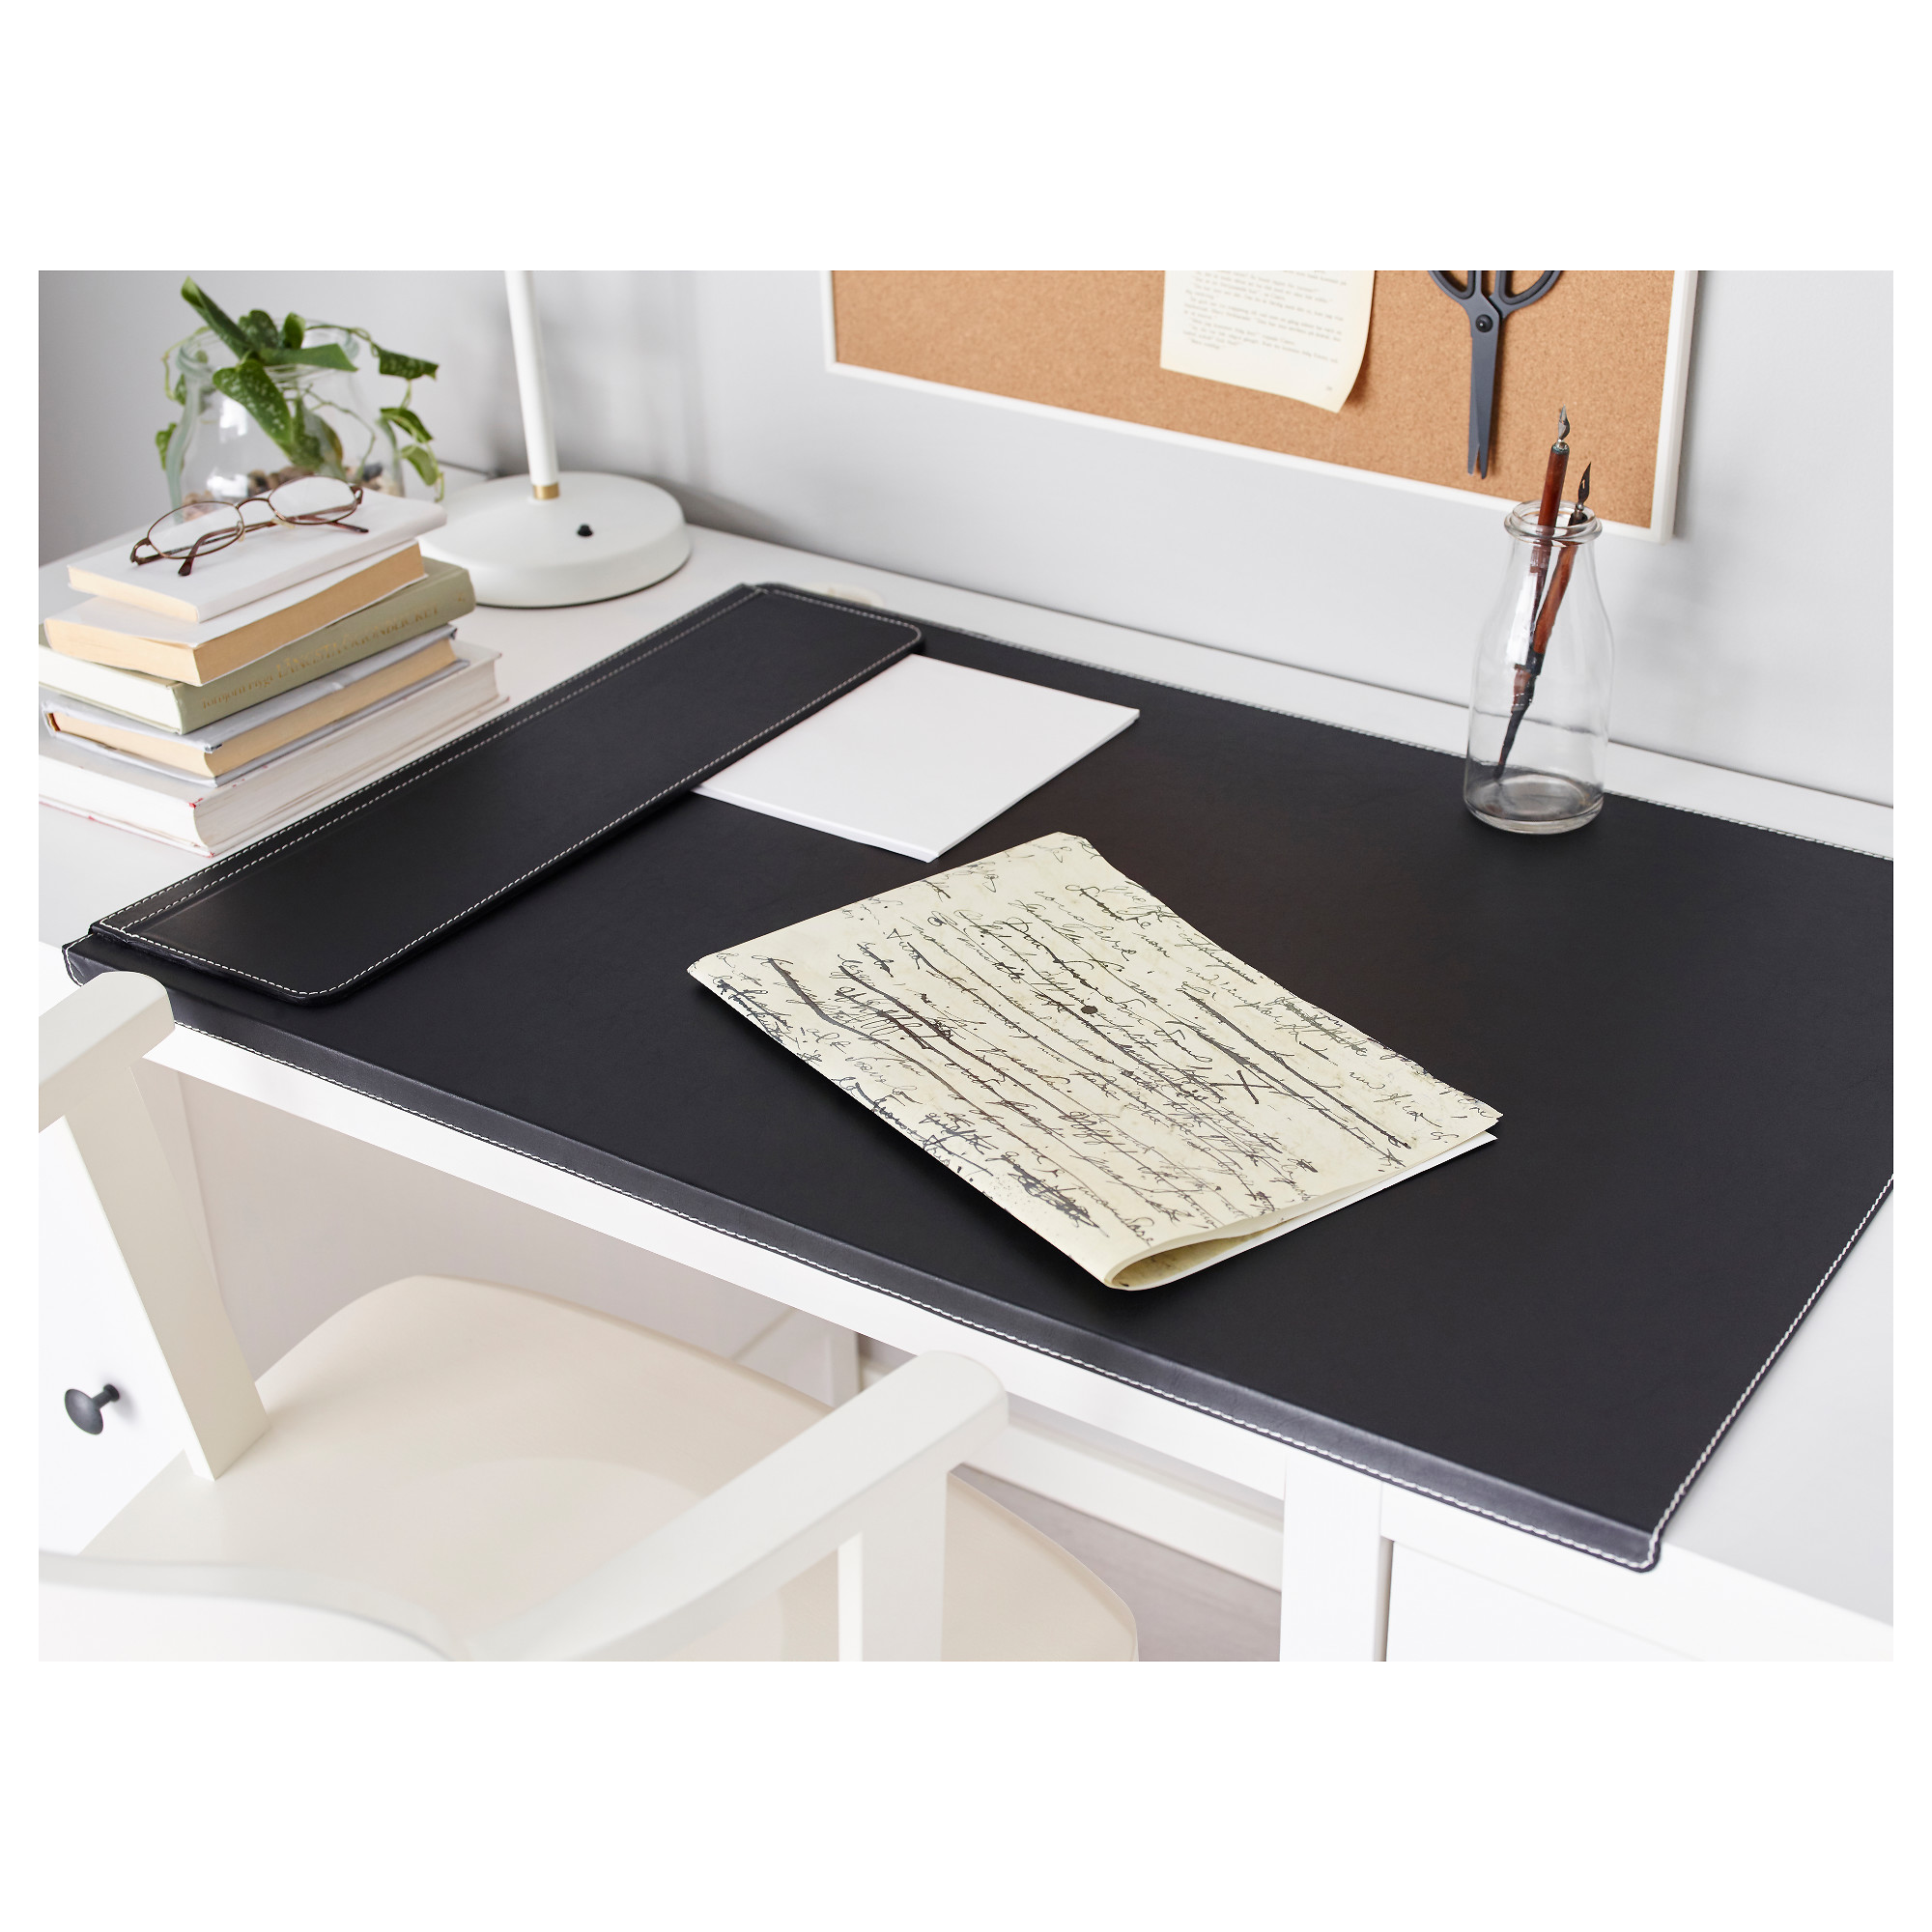 Marvelous RISSLA Desk Pad   IKEA Good Ideas